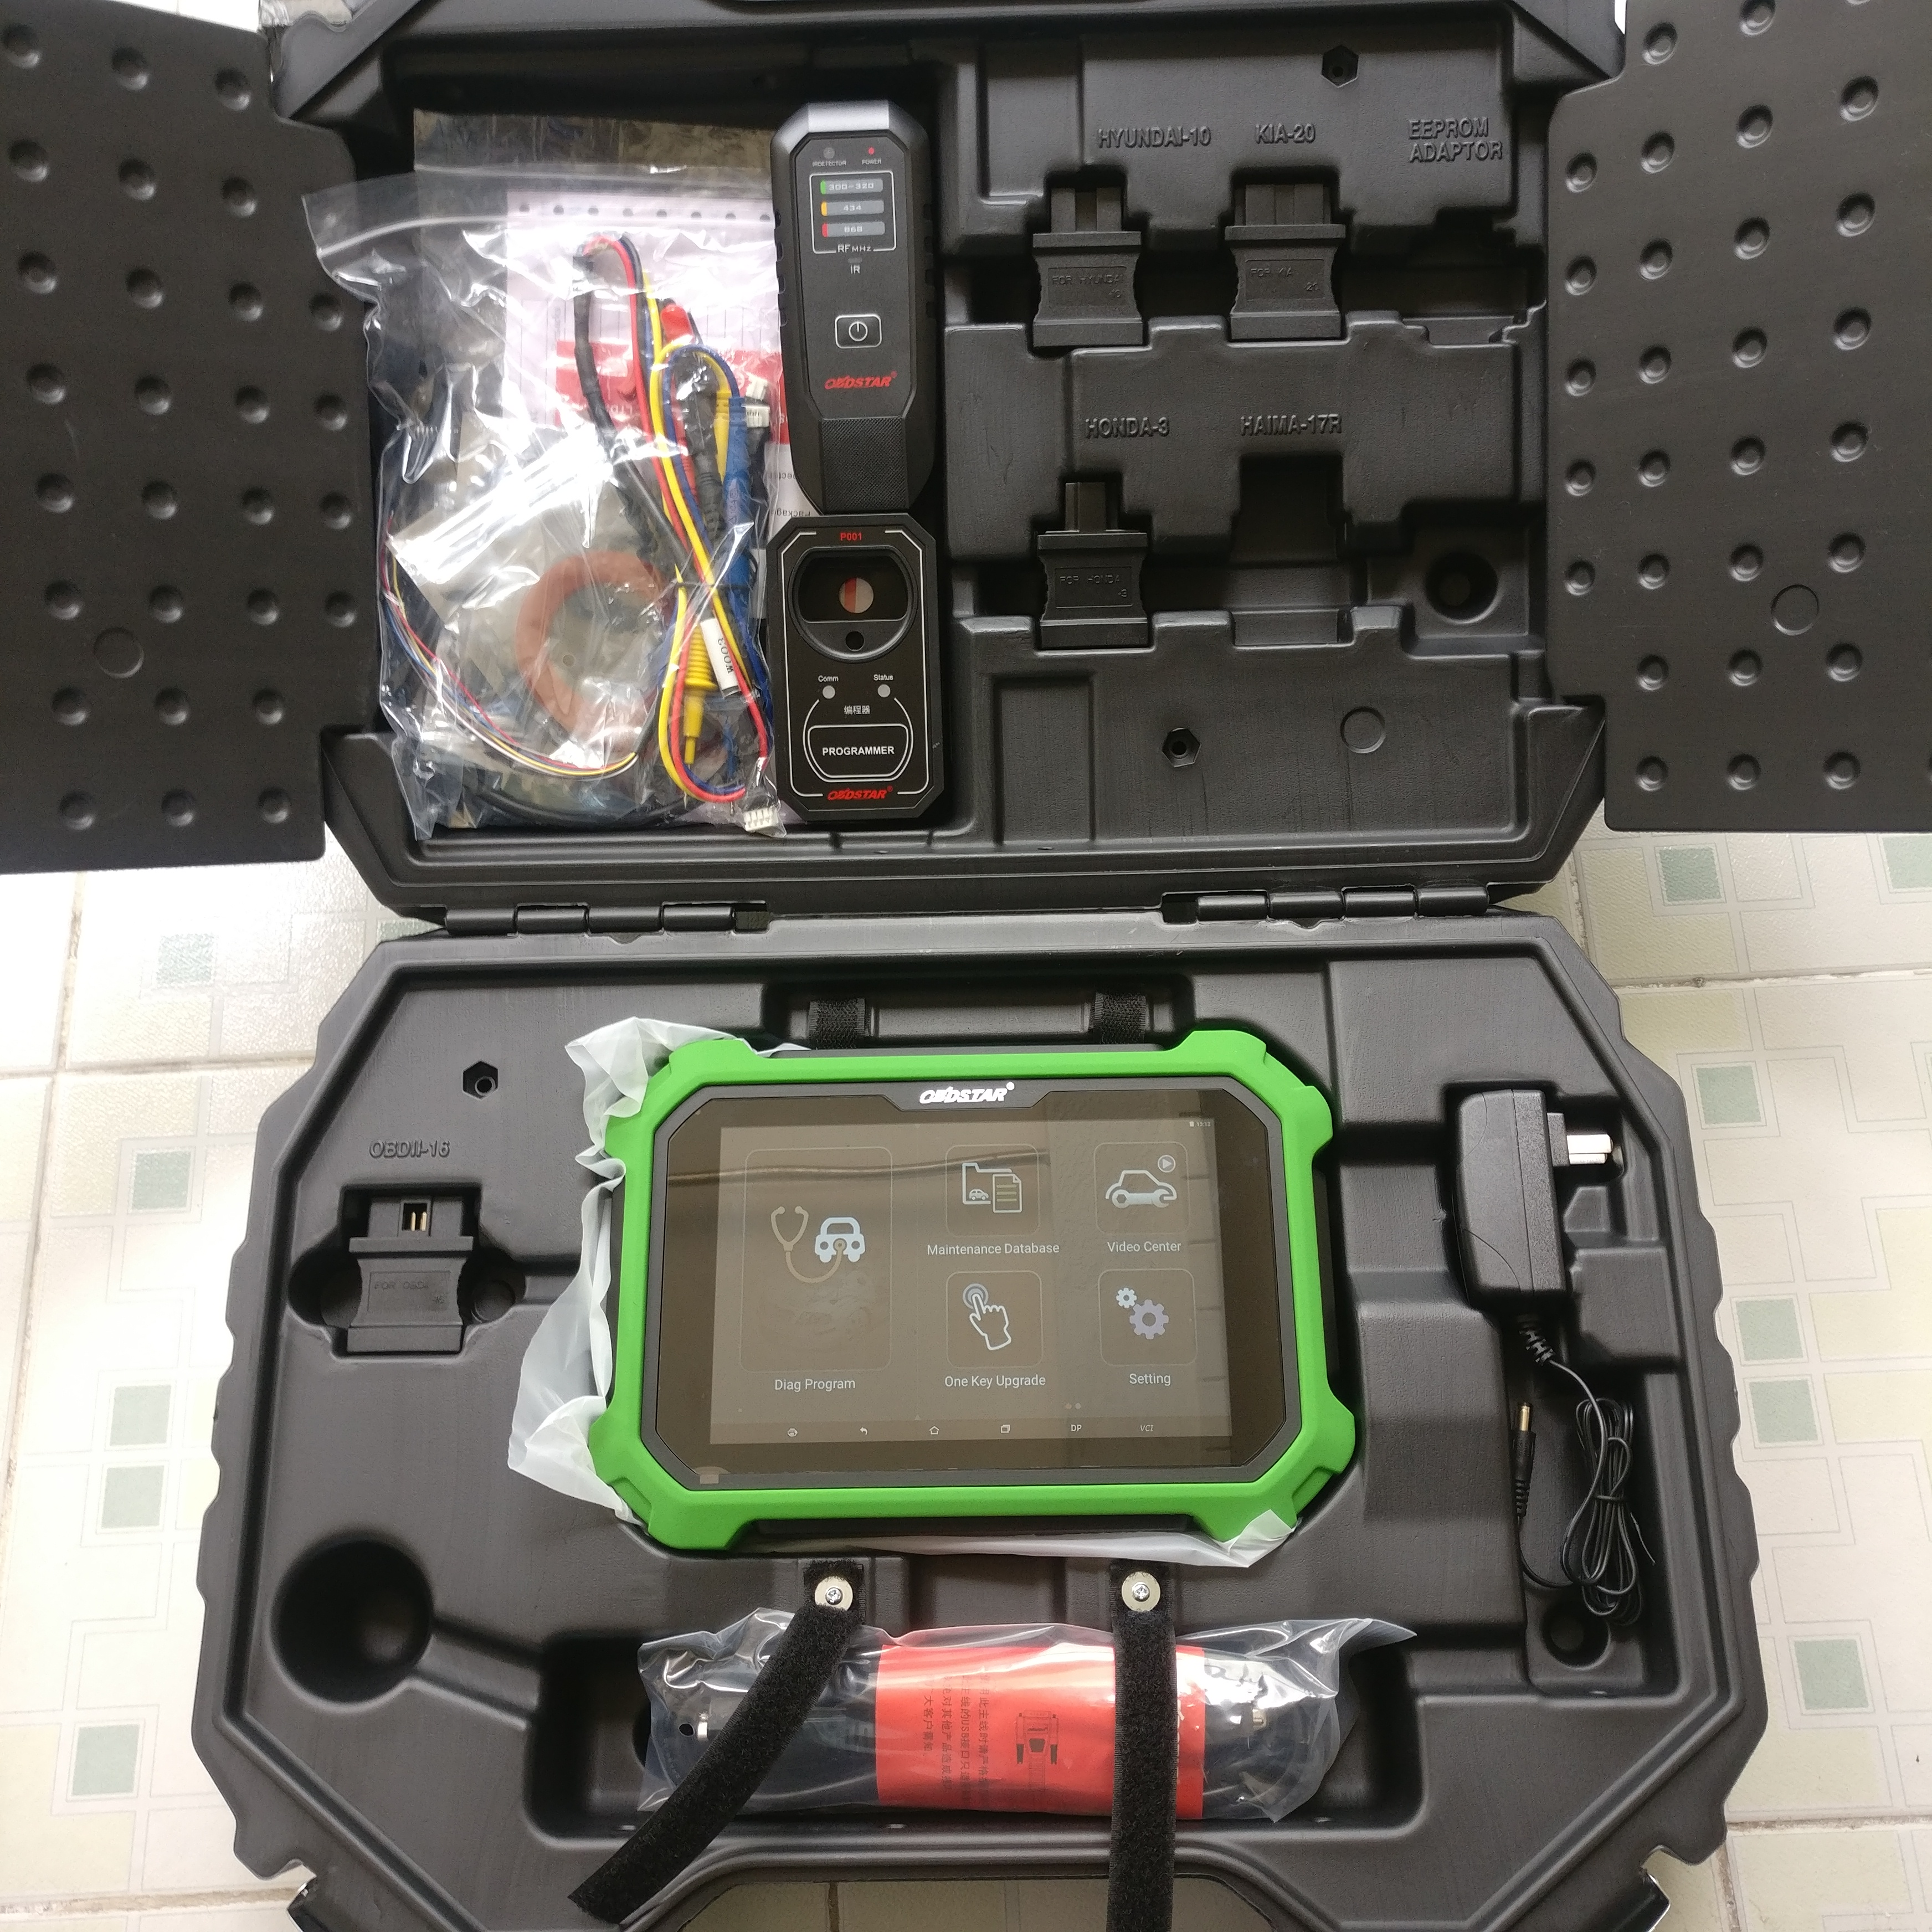 OBDSTAR X300 DP Plus PAD2 - Package B Immo + Odometer Functions